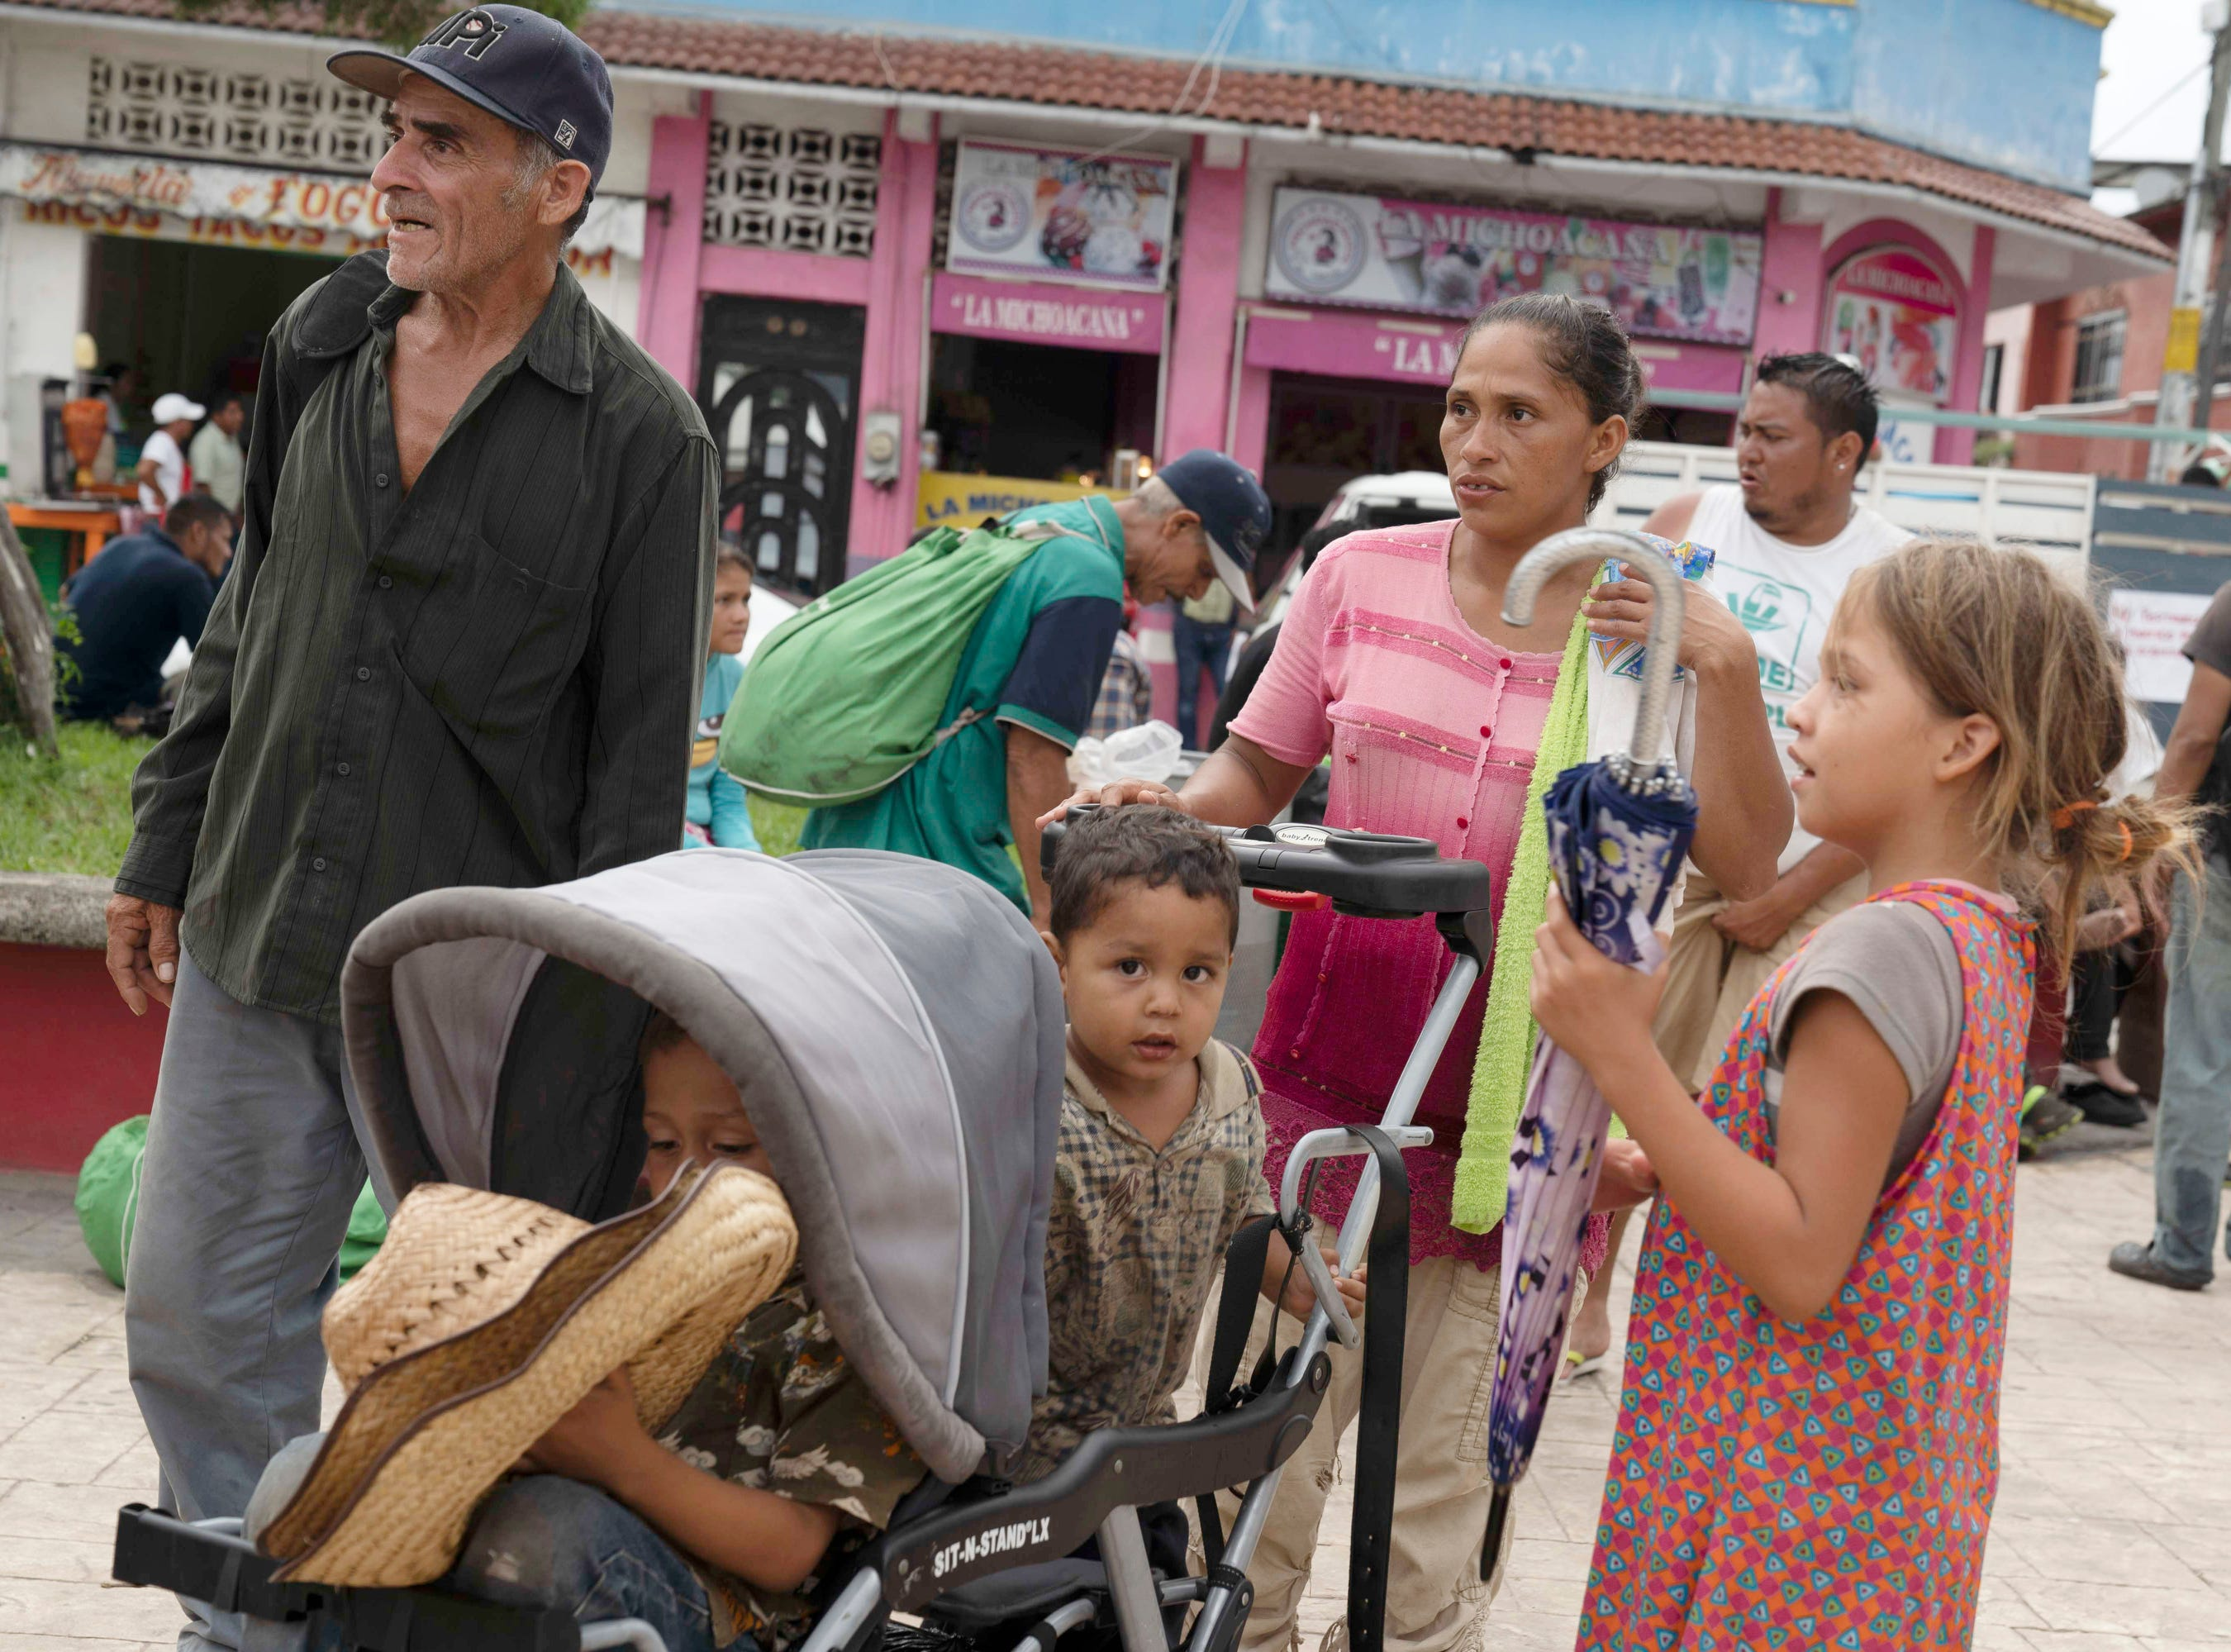 In Huixtla, Mexico, Yeni Cananero, 30, said she and her husband joined hundreds of migrants who waded across the chin deep river with their four children because the bridge was blocked. They said Mexican helicopters hovered over the water to create waves to deter the migrants from attempting to cross.  She said her children almost drowned. Cantanero said they fled Honduras because gangs had threatened to kill their family.